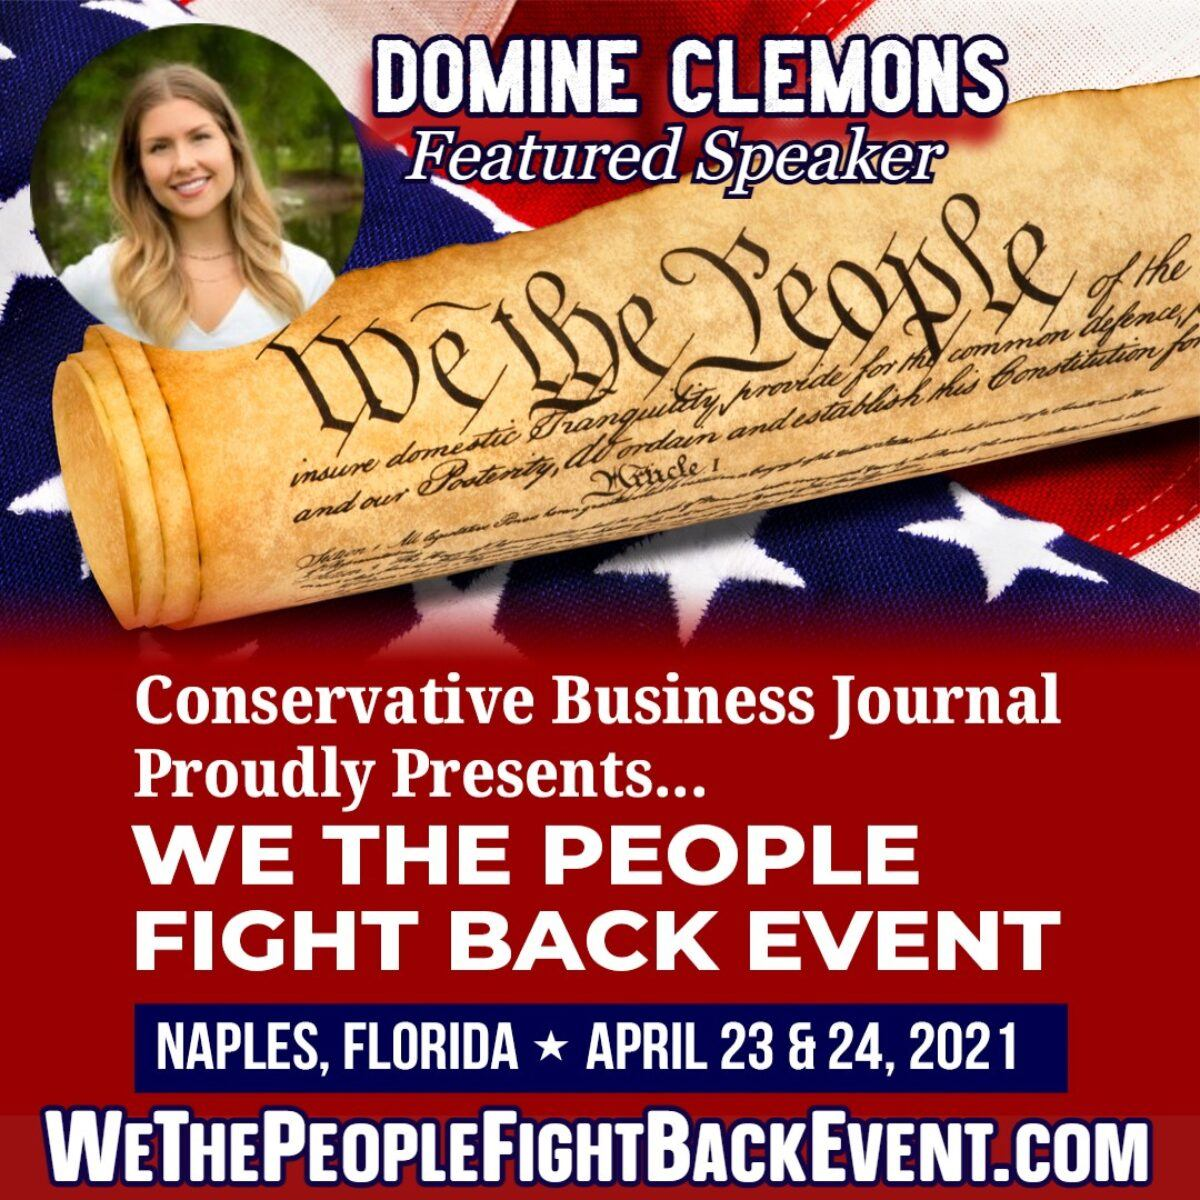 Domine Clemons - Florida Citizens Alliance - Conservative Business Journal